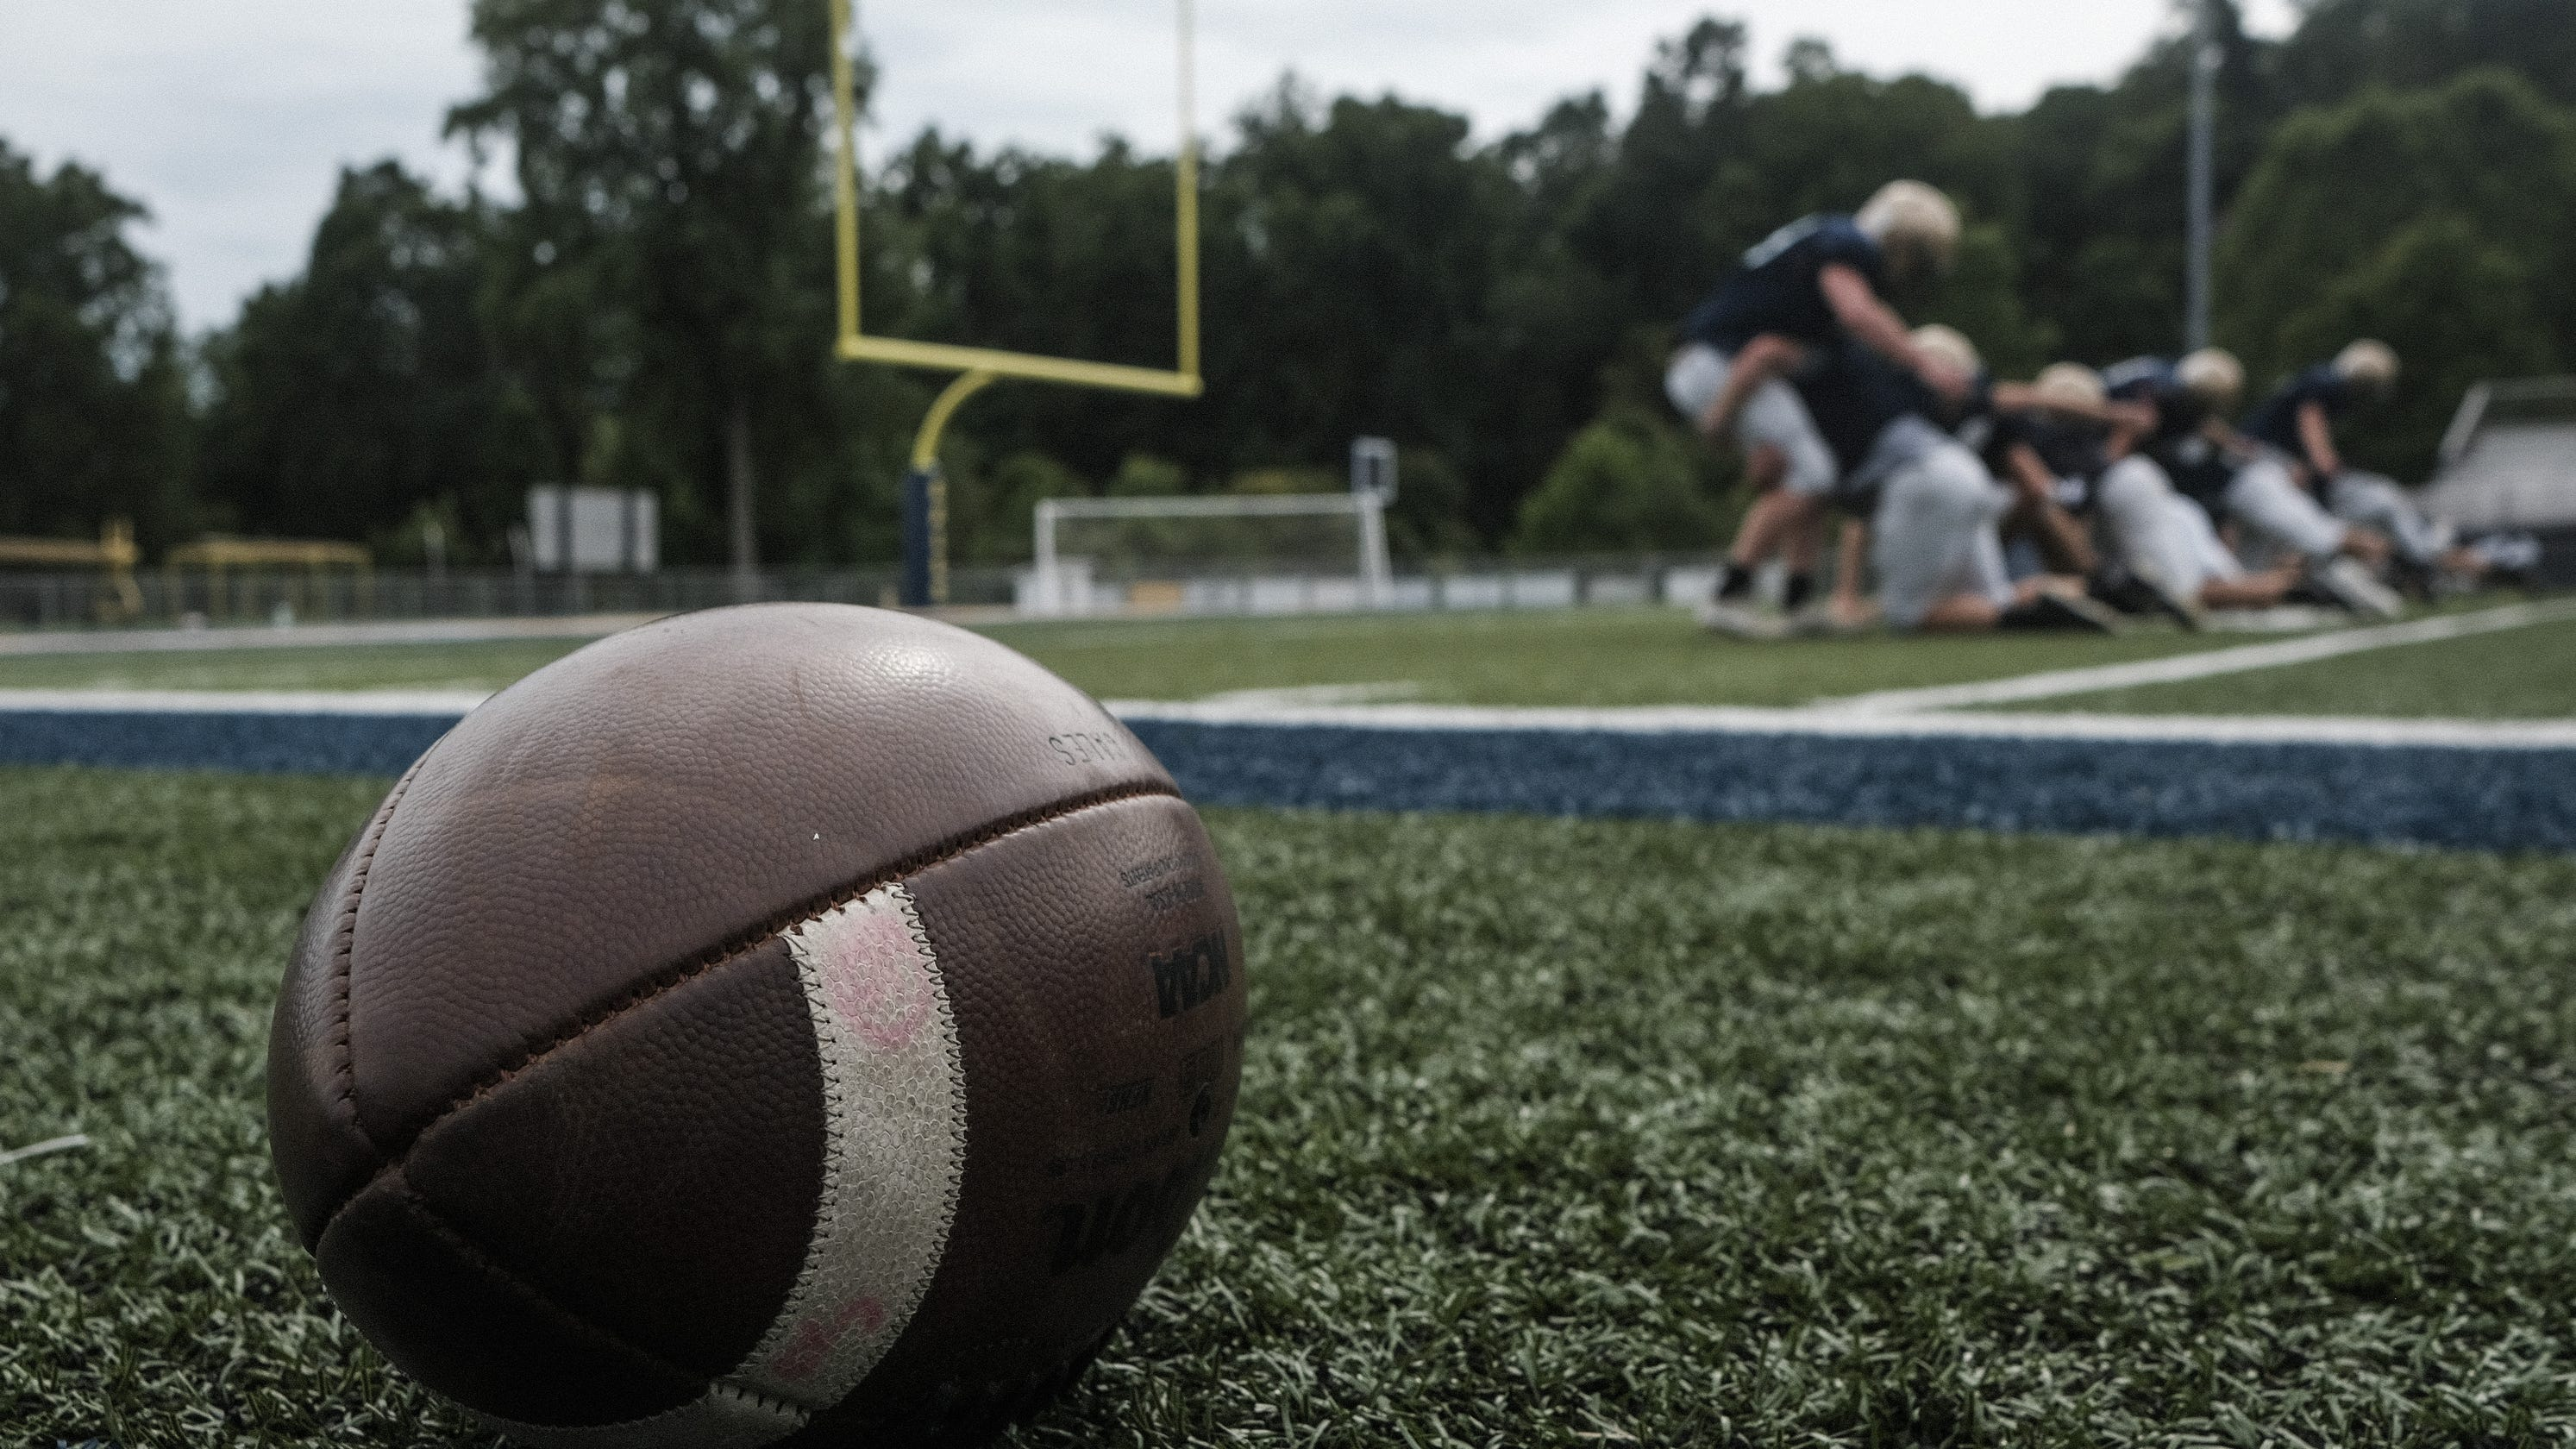 'Uh, Hernandez?': Men busted in high school athletics fundraising scam when they show up at coach's door